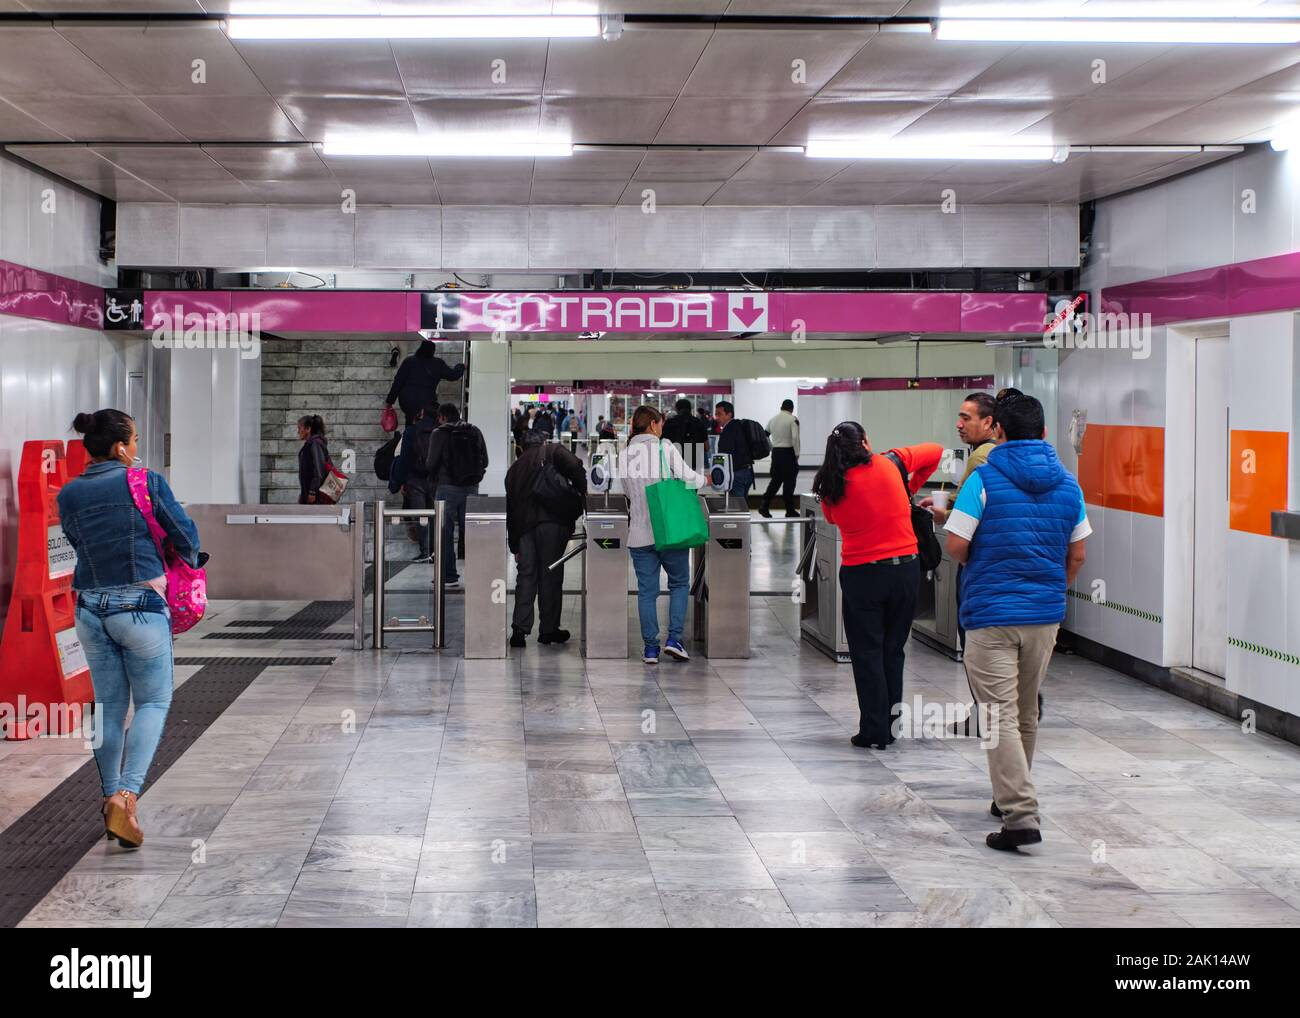 Sistema de Transporte Colectivo, Mexico City, October 16, 2019 - Entrance to Mexico City subway with people paying for the ticket using the rechargeable card. Stock Photo